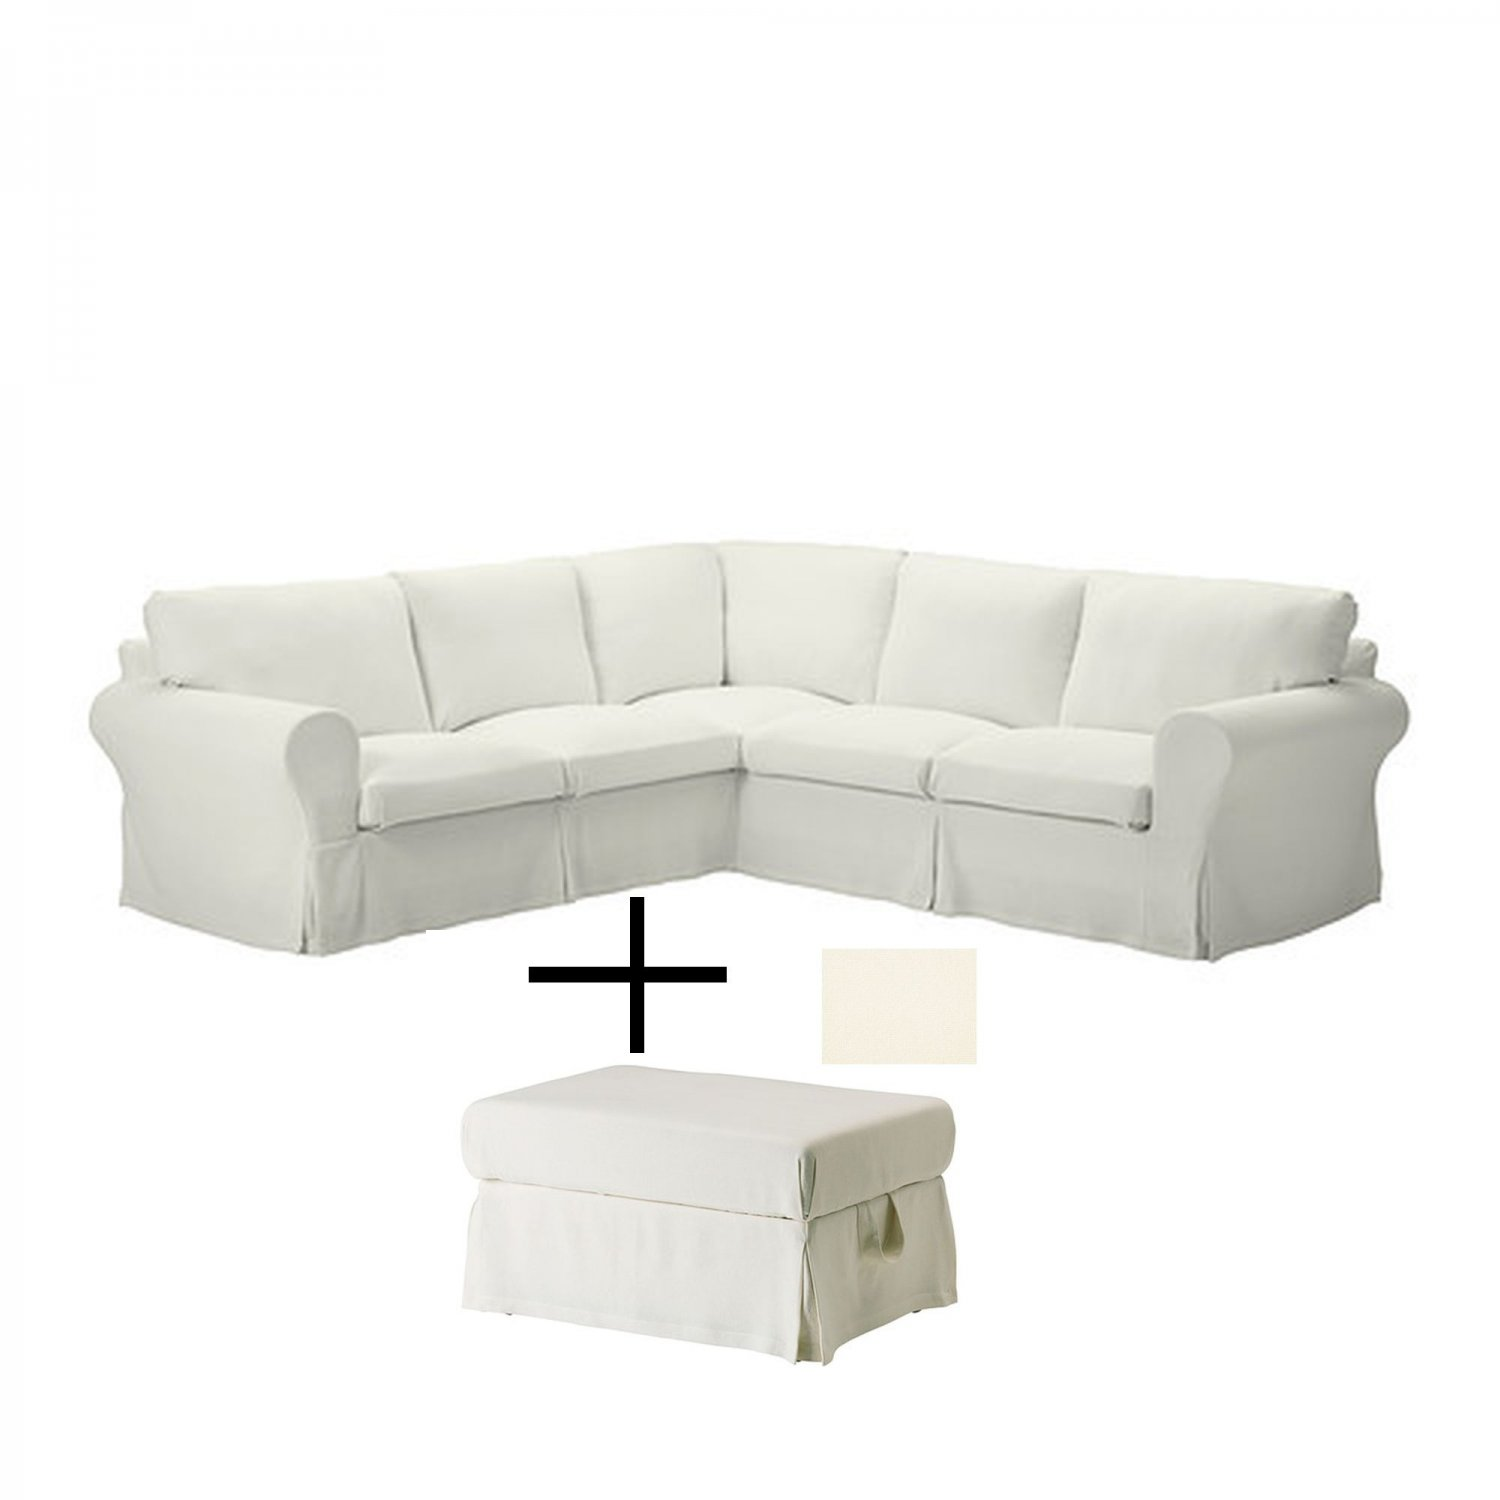 Ikea Ektorp Corner Sofa And Footstool Slipcovers Stenasa